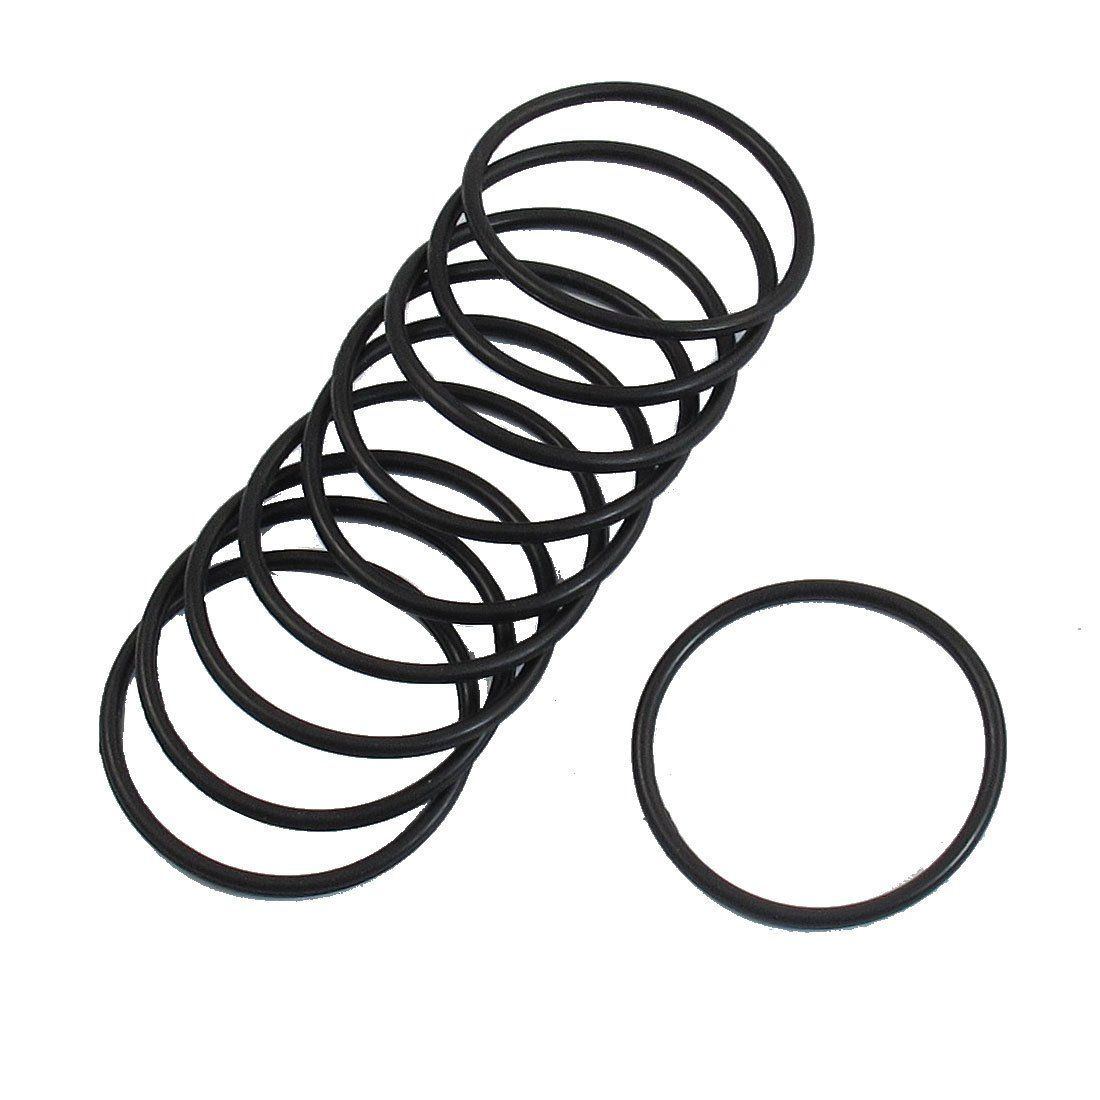 10 Pcs 35mm X 2mm Industrial Flexible Rubber O Ring Seal Washer Ear Grommets Industrial Hardware Hardware